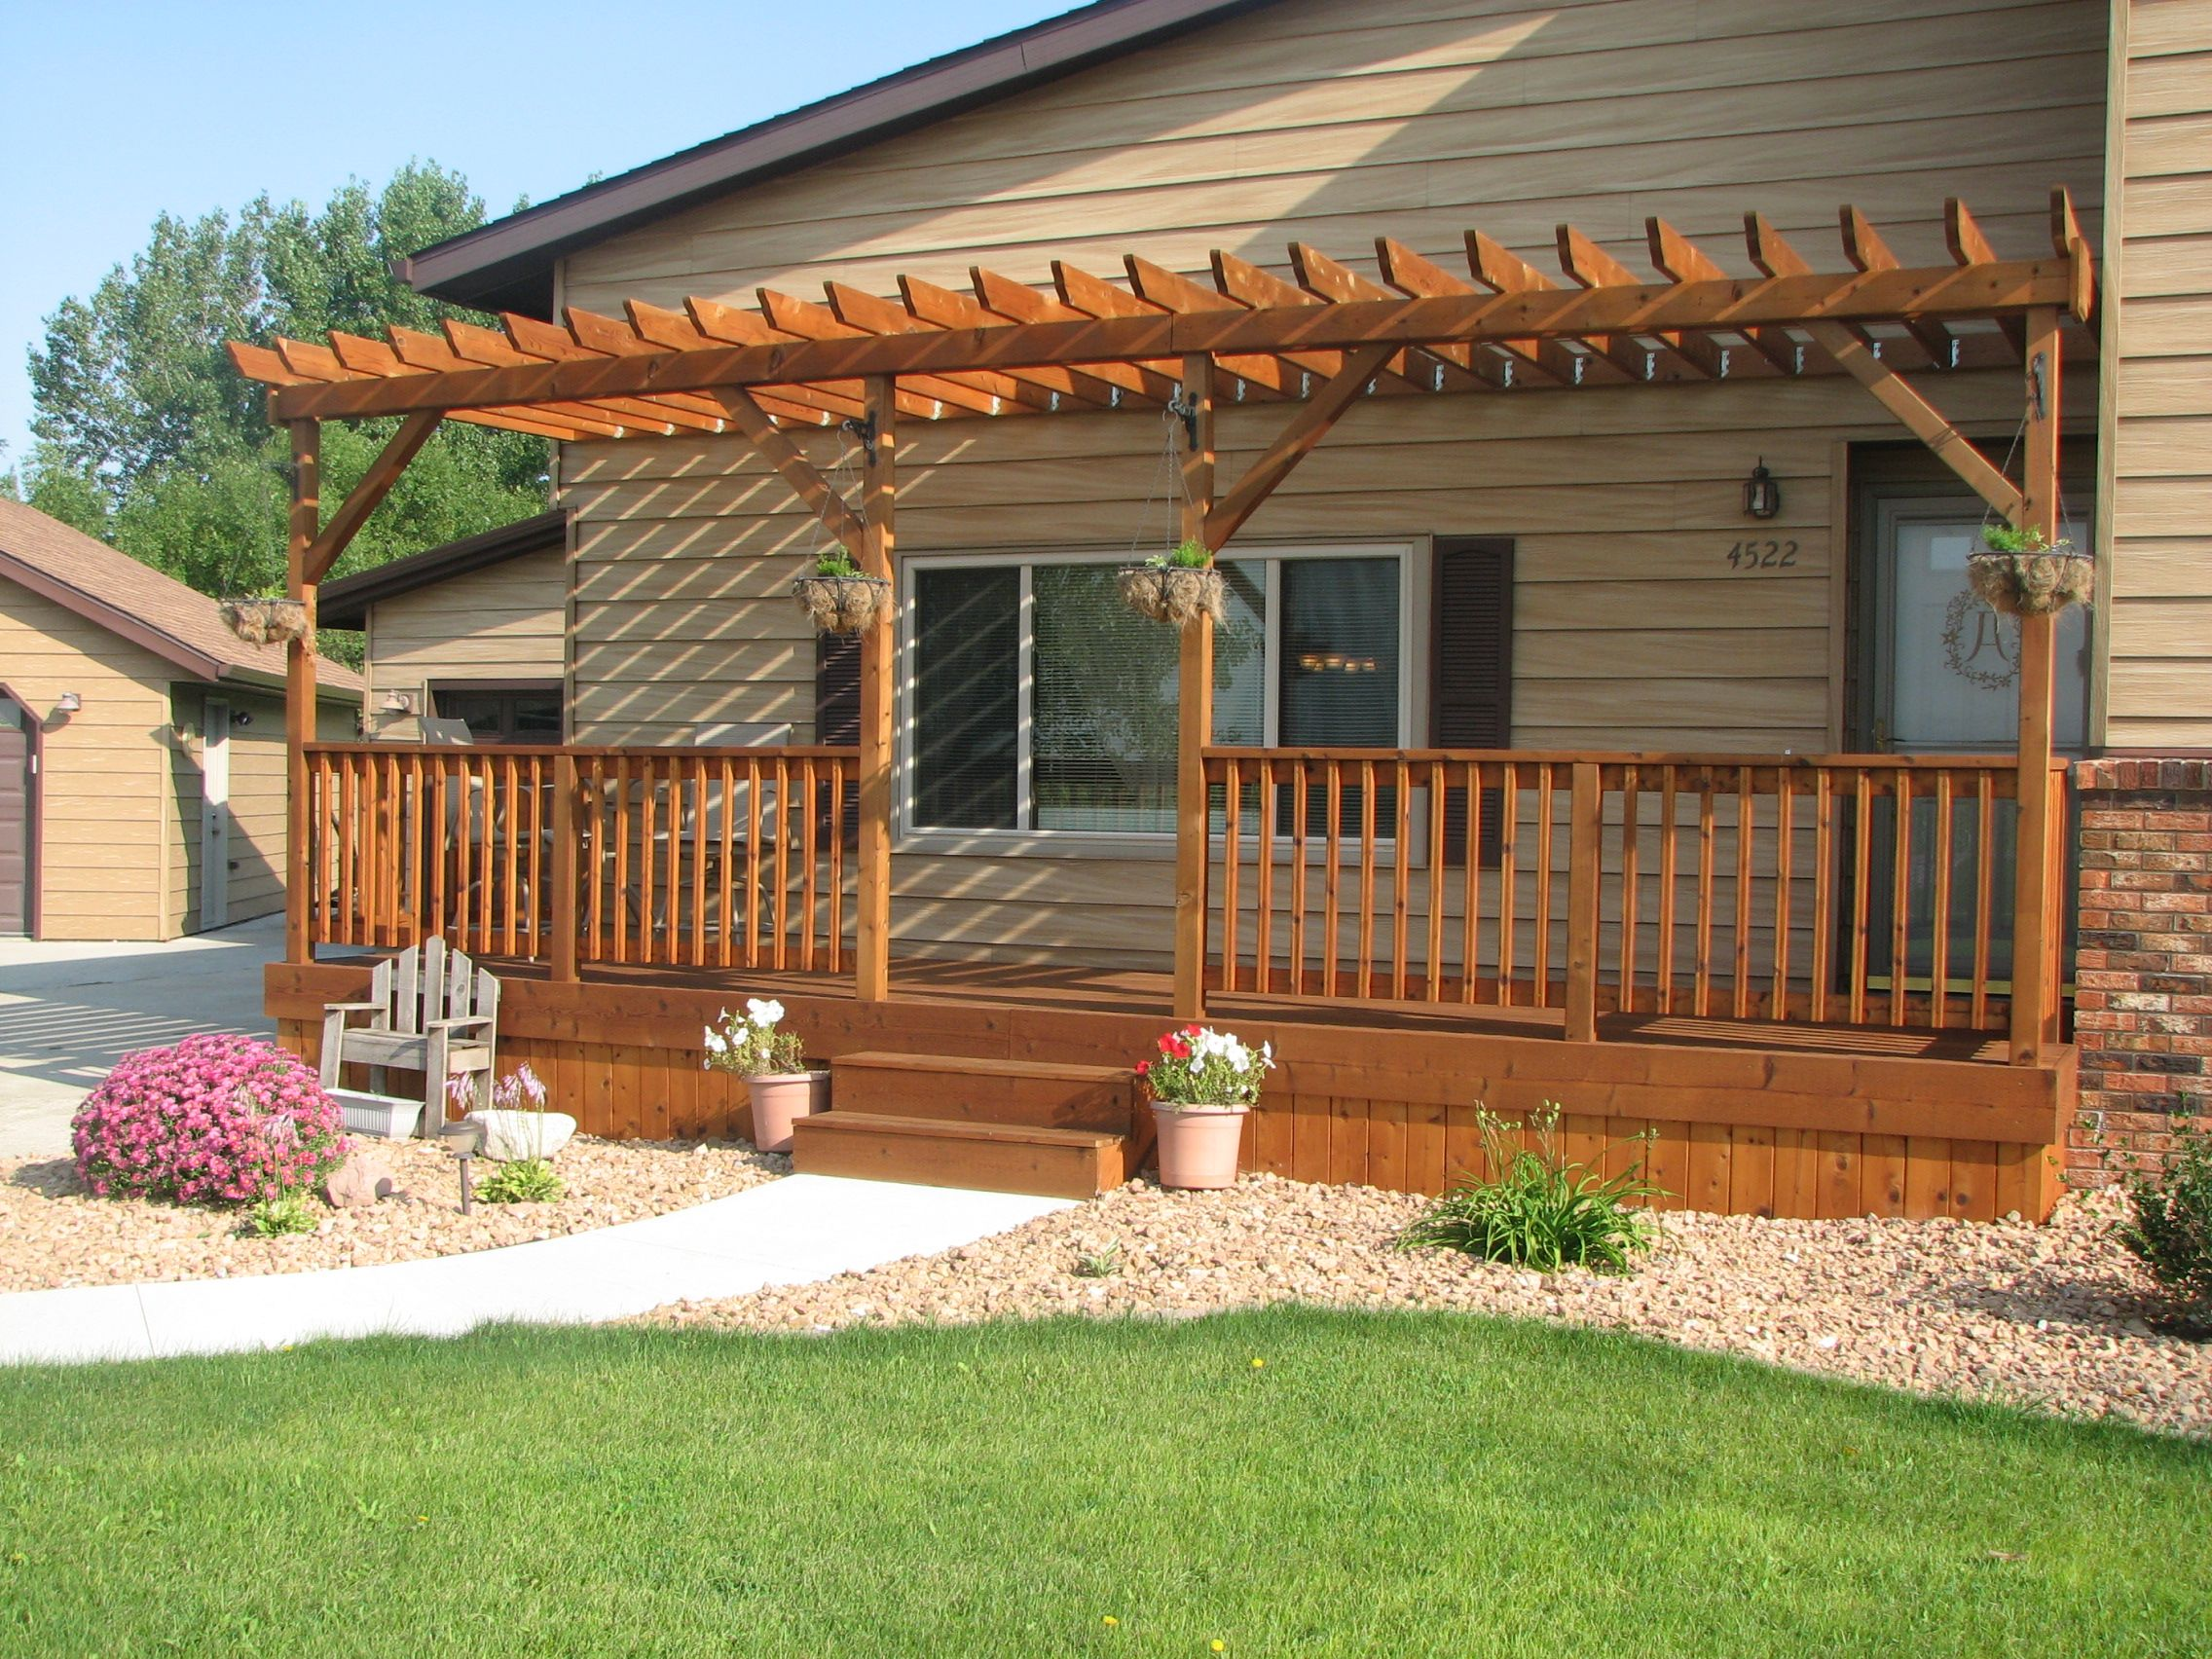 Dreaming is free front porch pergola pergola ideas and for Balcony roof ideas